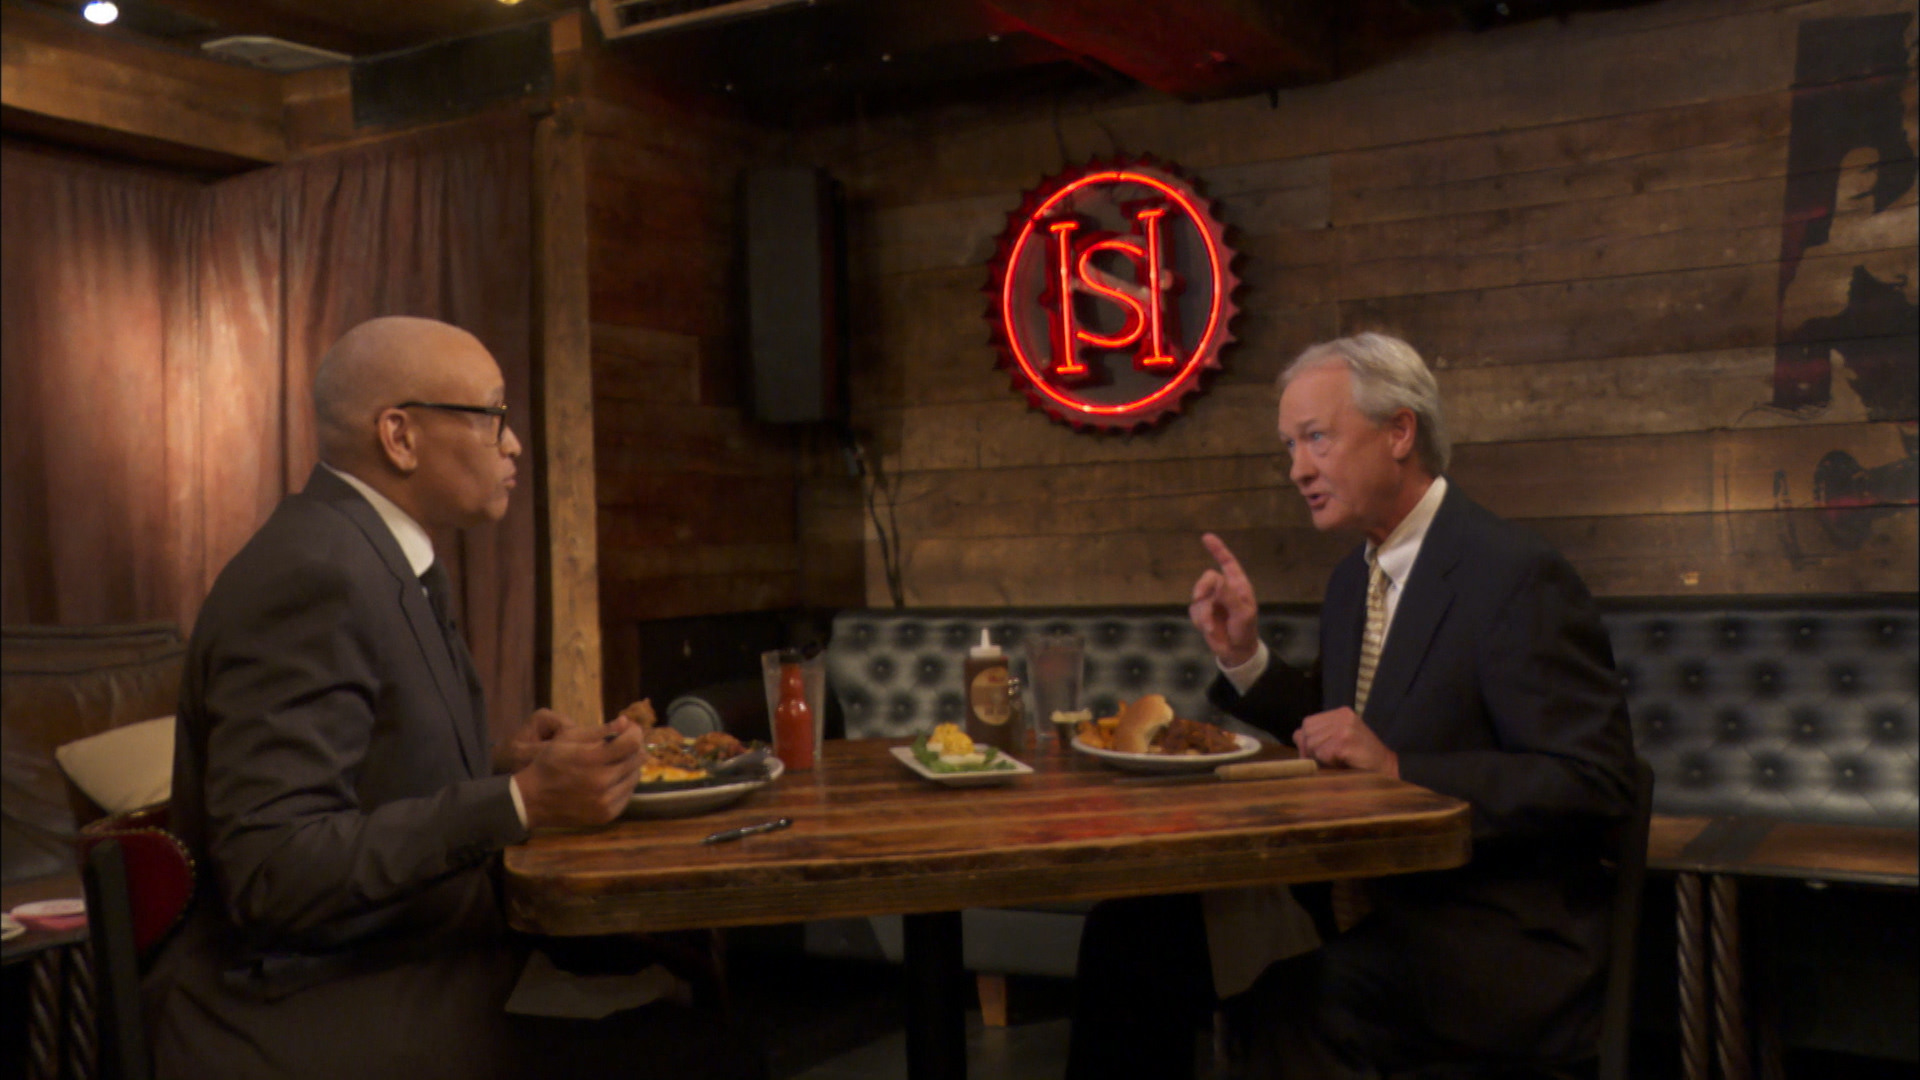 June 11, 2015 - Soul Food Sit-Down with Lincoln Chafee